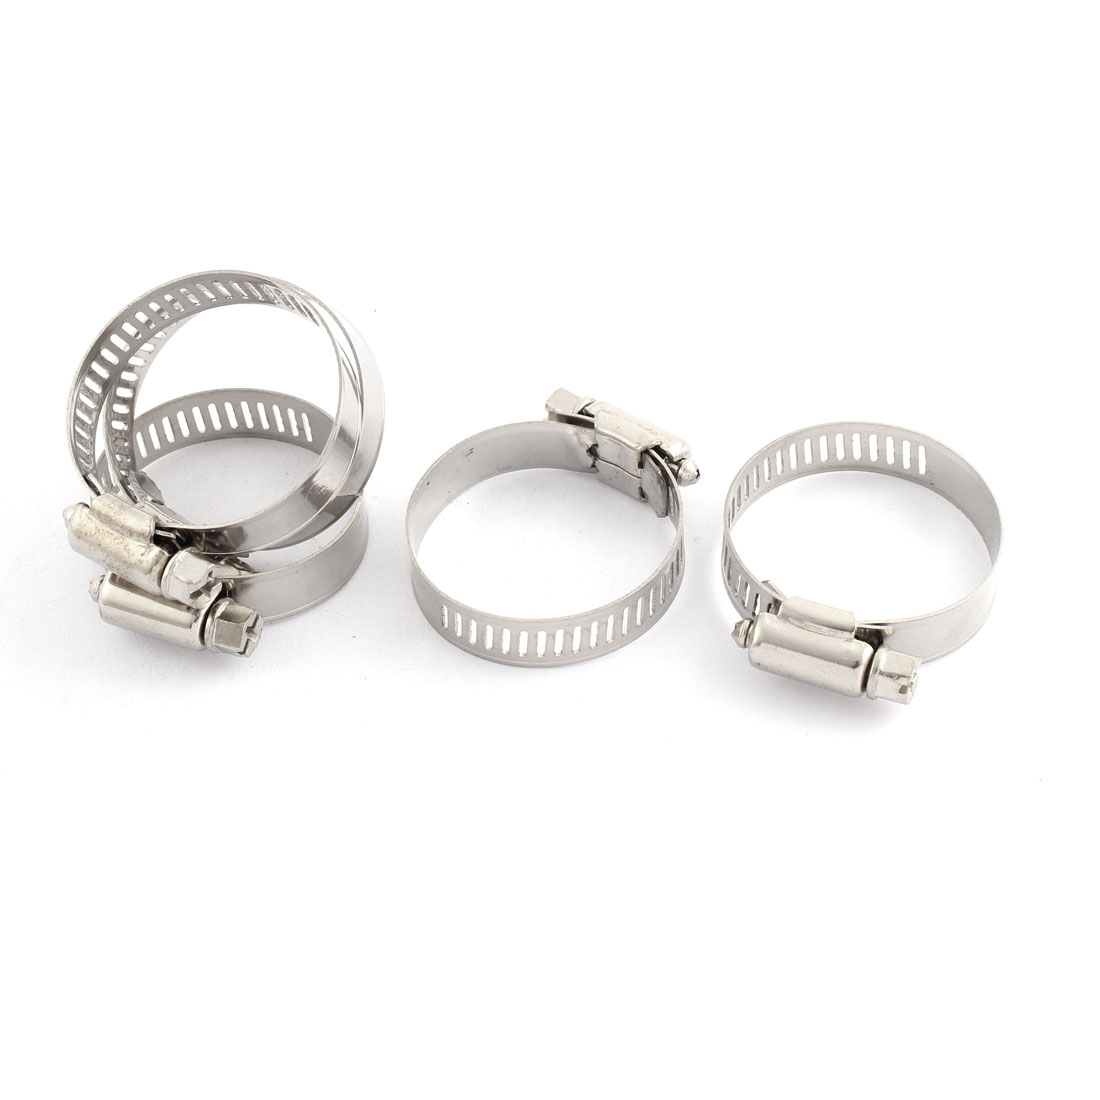 Adjustable 25-38mm Range Band Stainless Steel Wire Perforated Hose Clip Clamp 5 Pcs